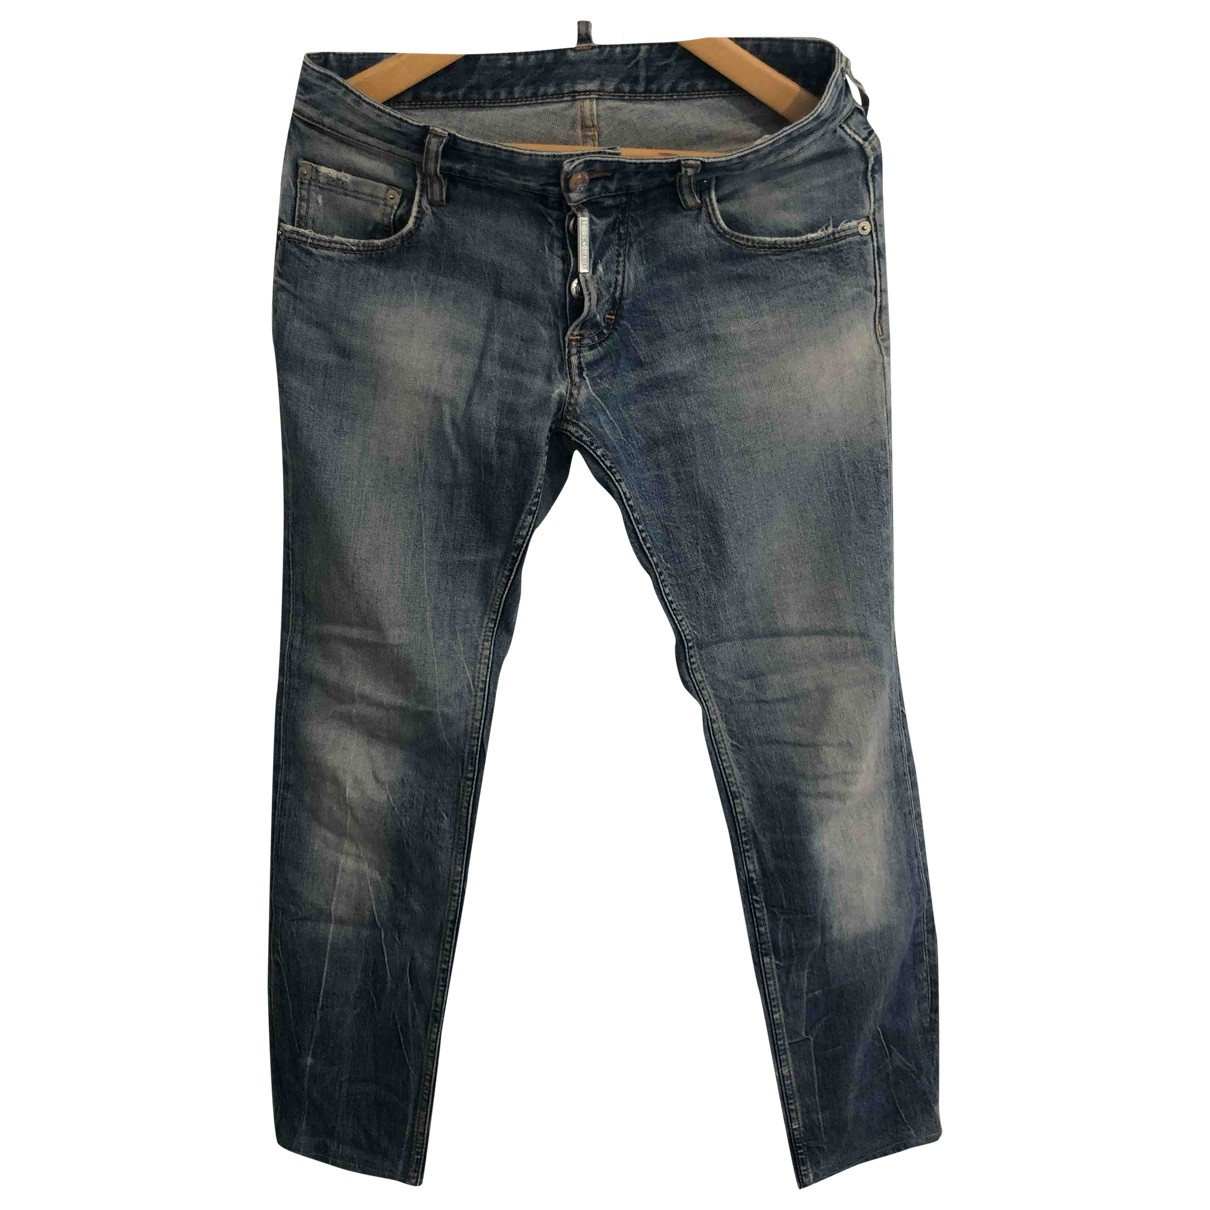 Dsquared2 \N Blue Cotton - elasthane Jeans for Men 42 - 44 FR